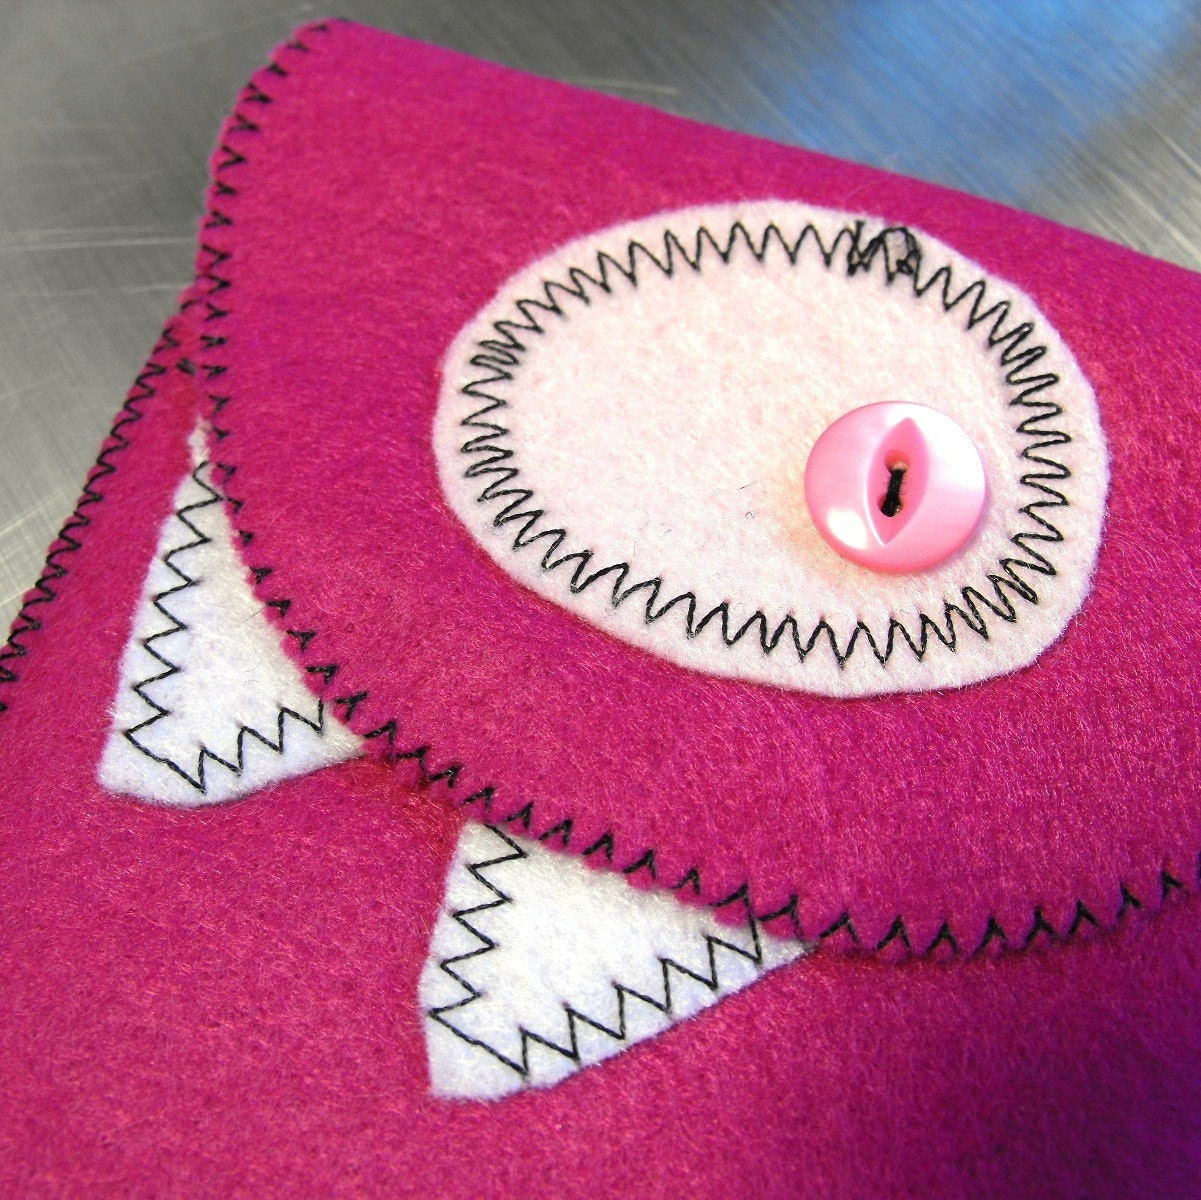 SHERBET EYE PHONE MINI MONSTER POUCH - iPHONE, iPOD, BLACKBERRY, GADGET